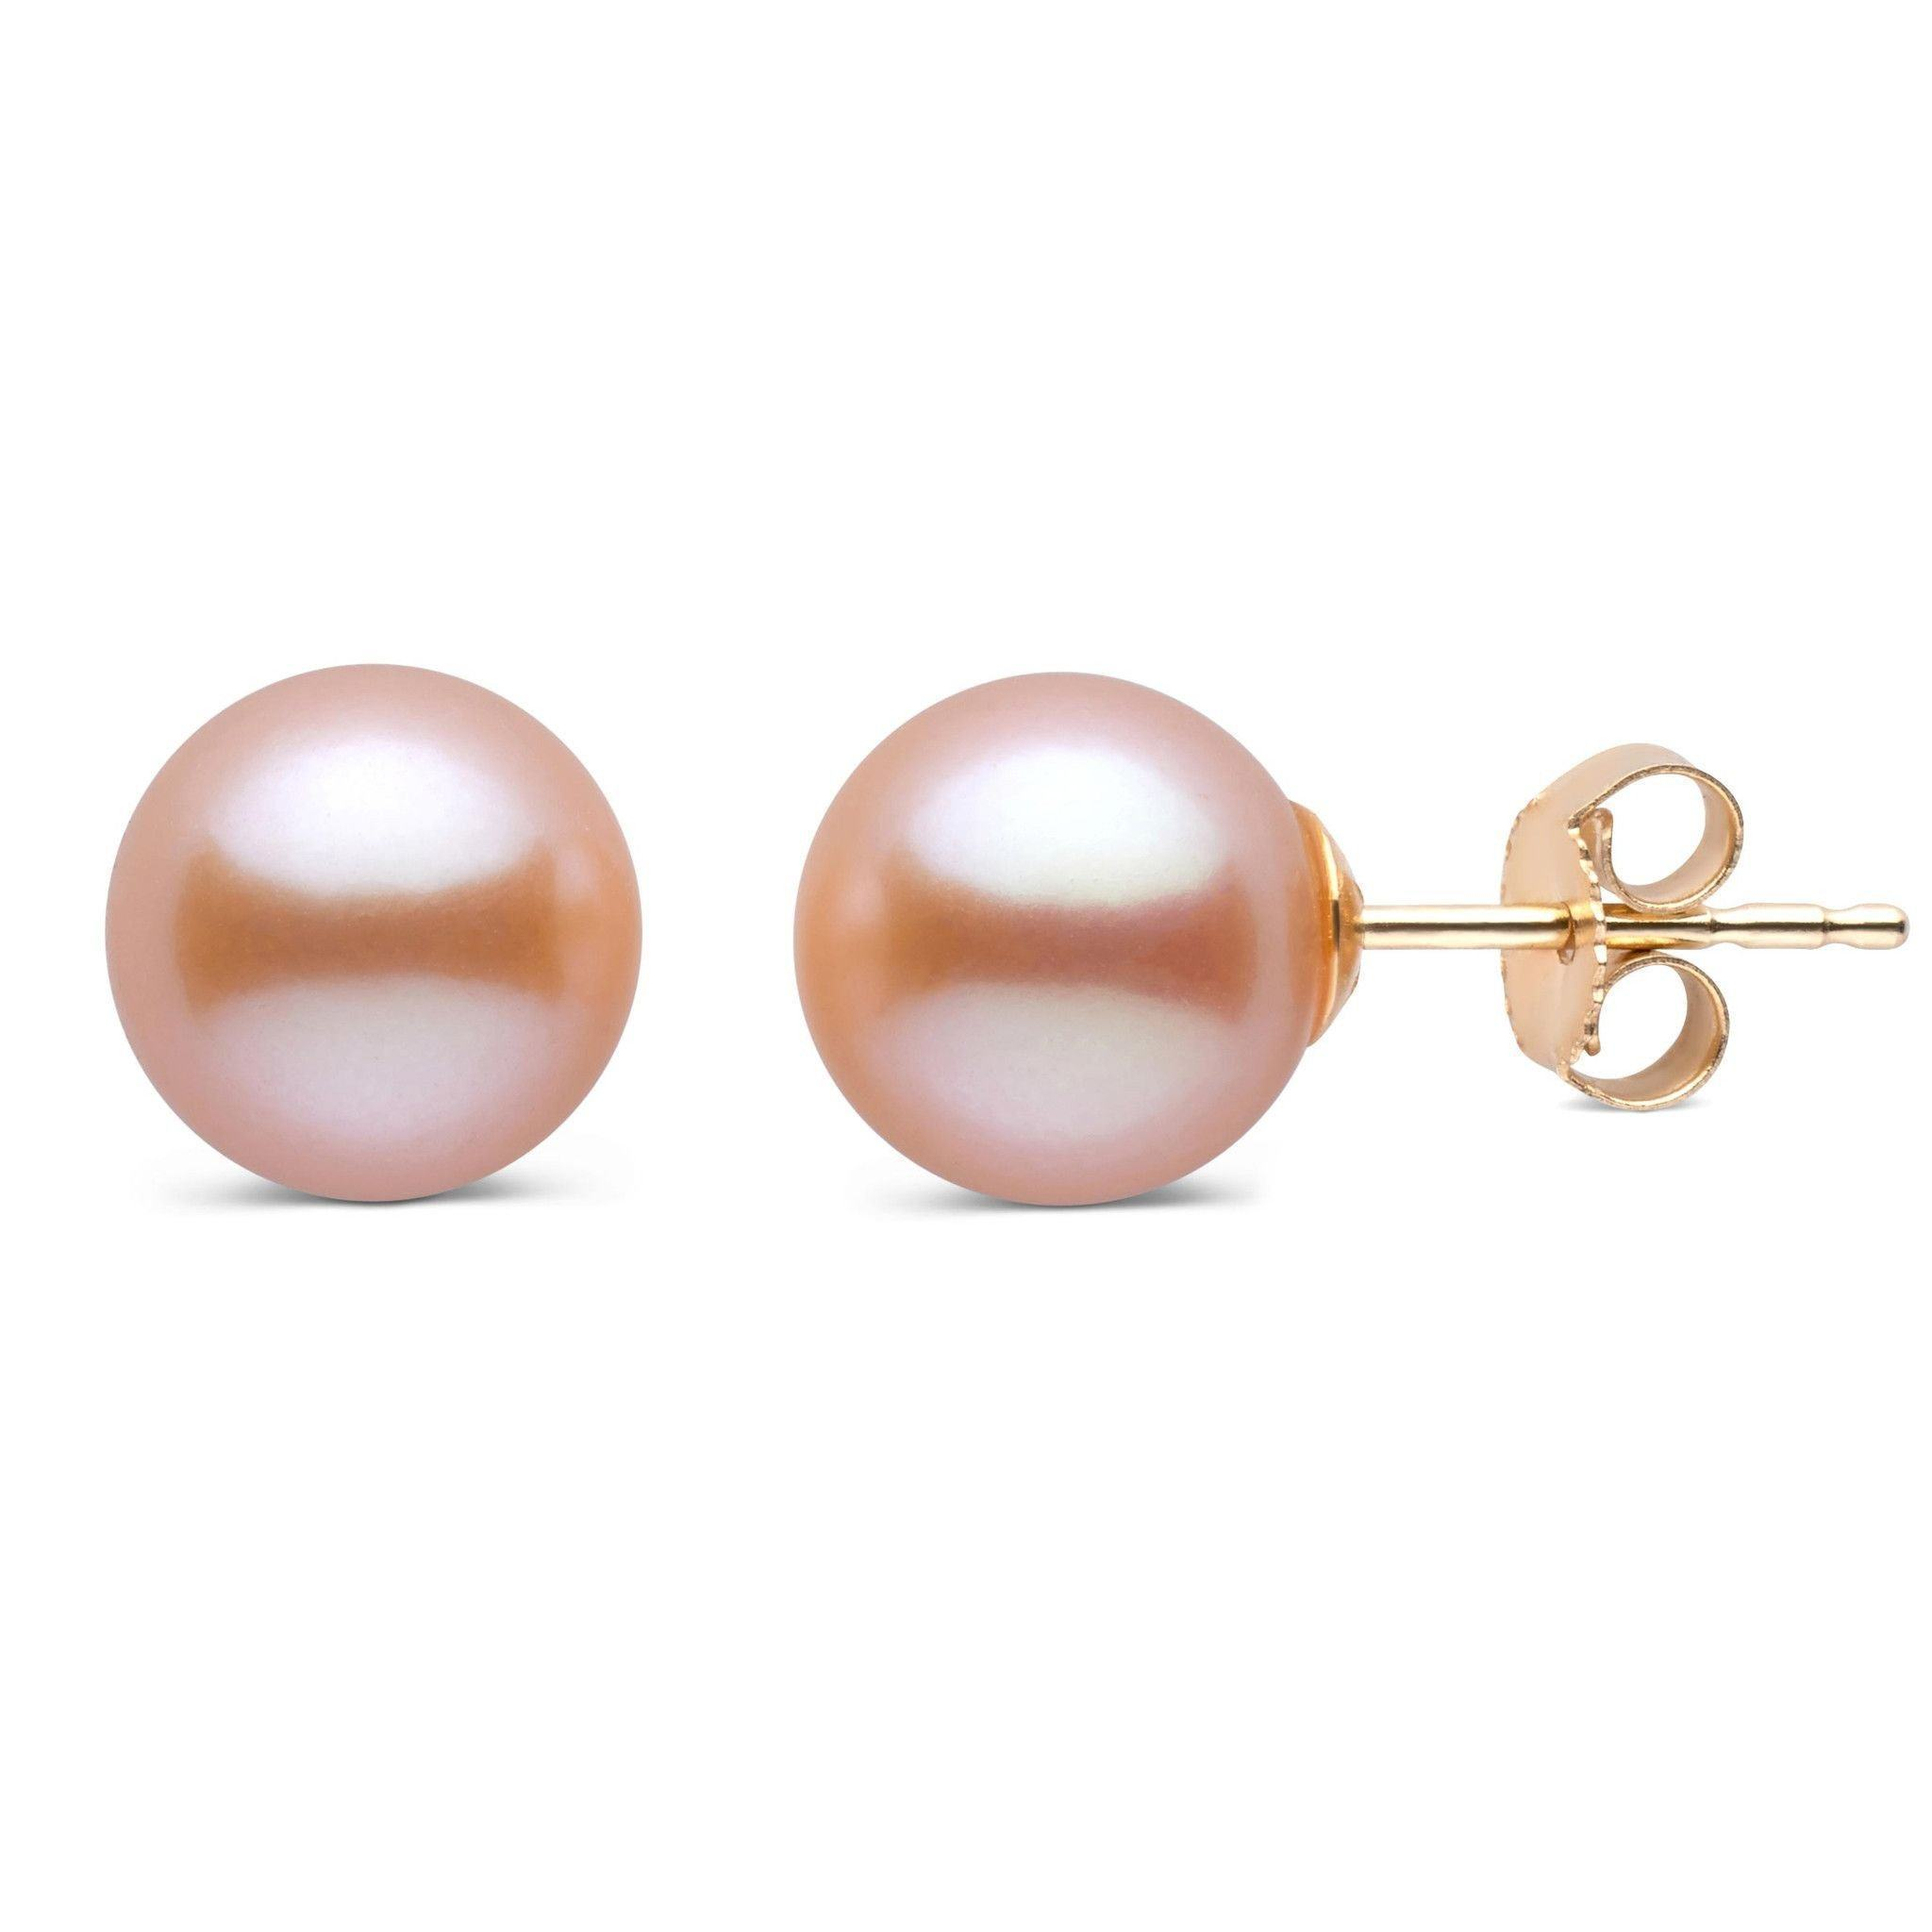 8.5-9.0 mm AAA Pink to Peach Freshwater Pearl Stud Earrings